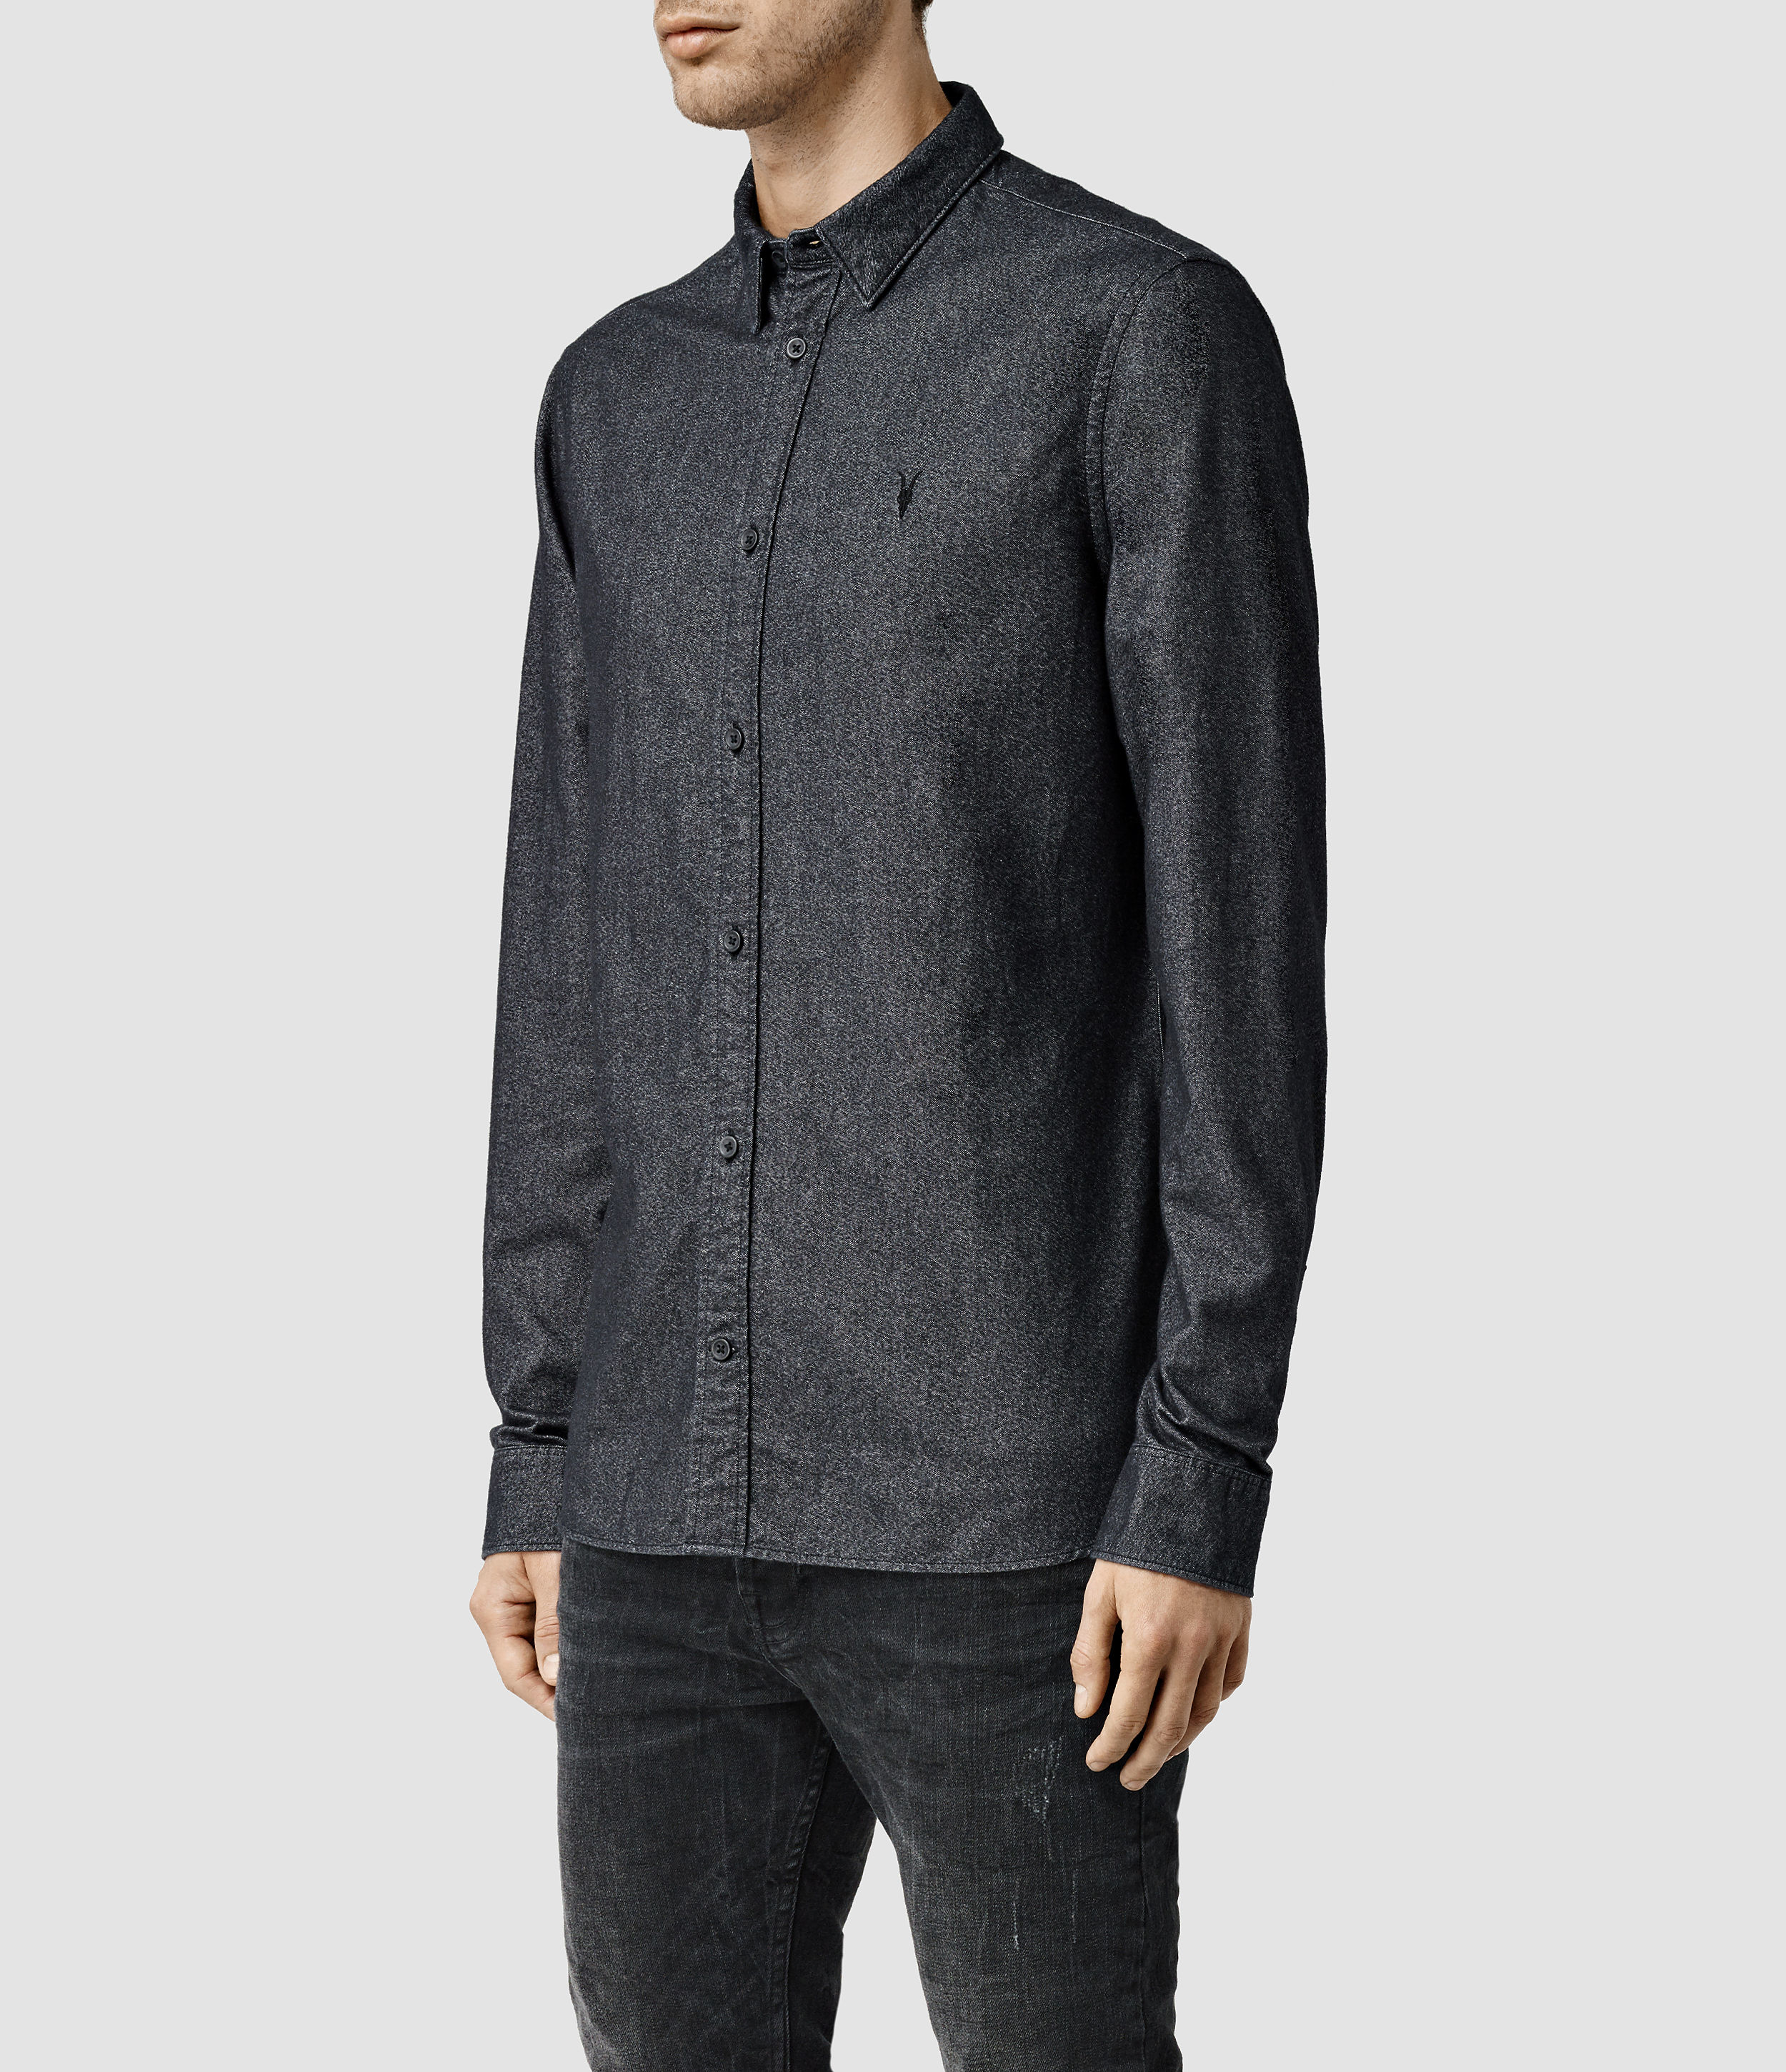 Allsaints Foundry Shirt Usa Usa In Gray For Men Lyst